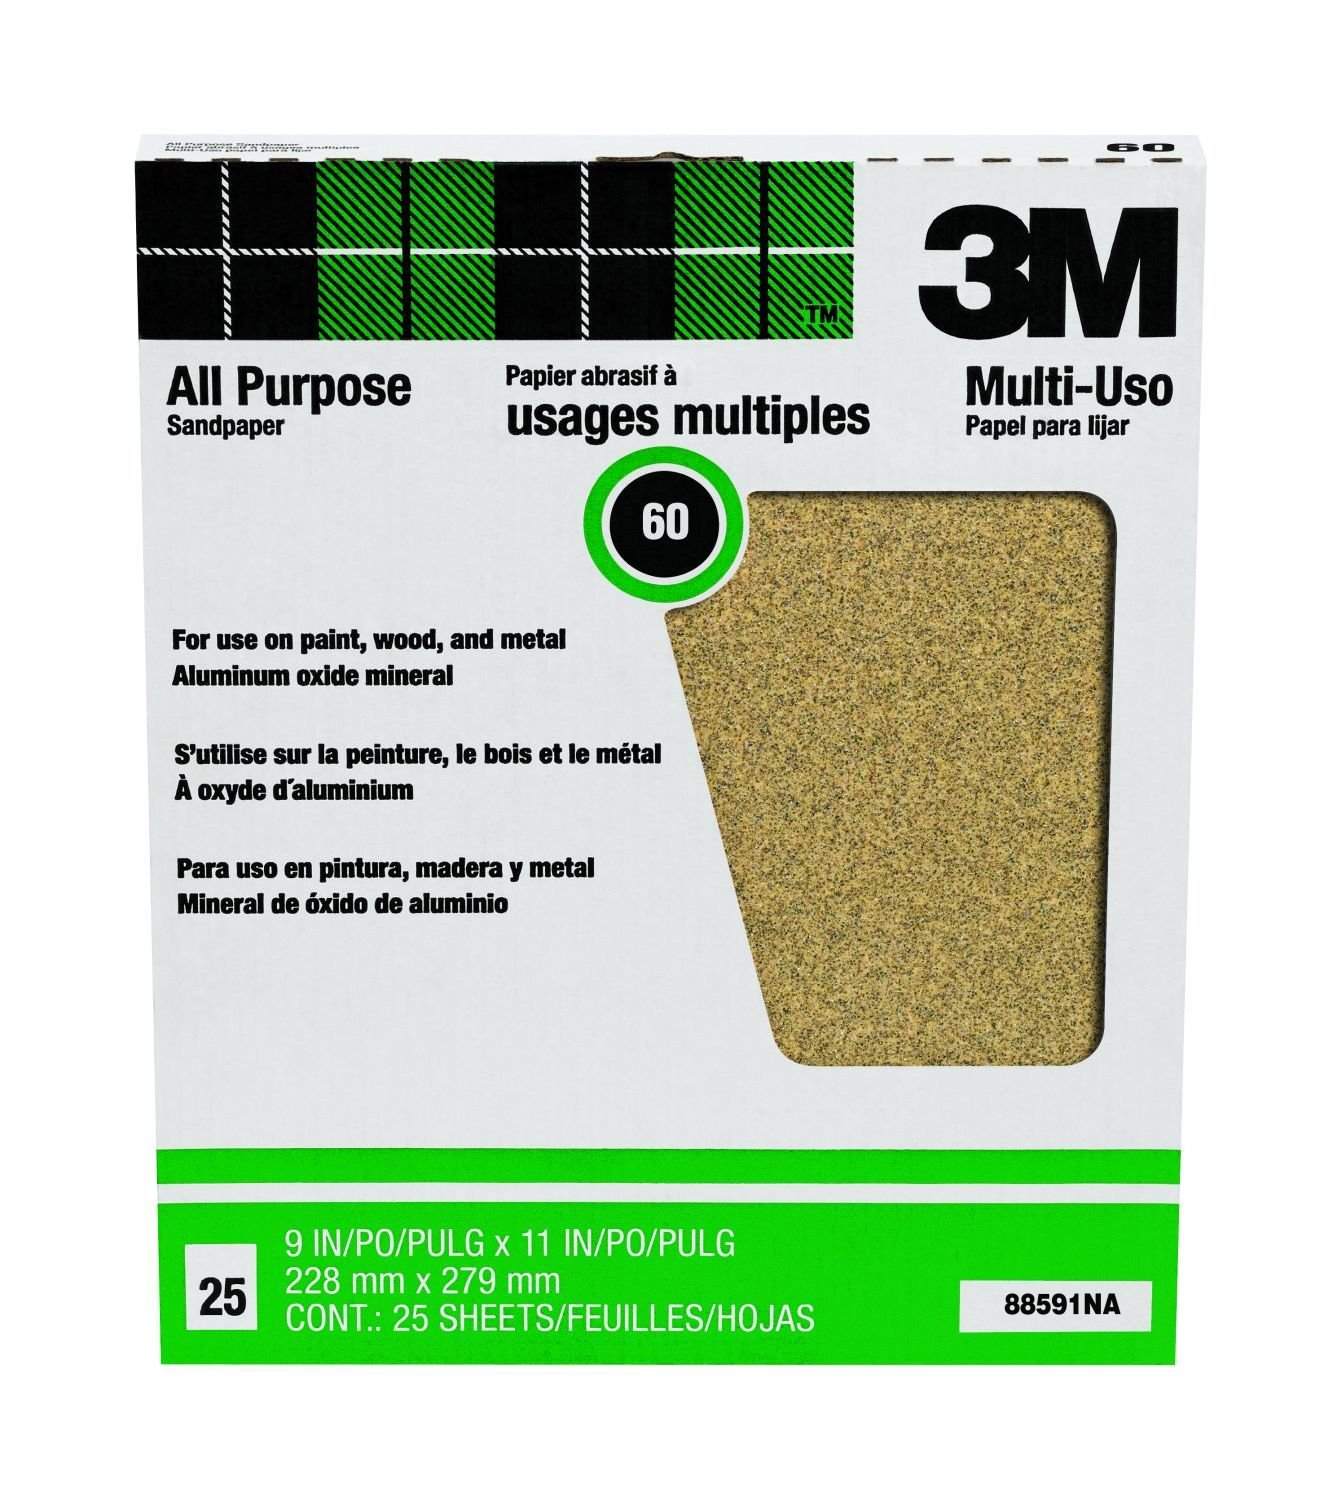 3M 346U Abrasive Sheet Aluminum Obyide 11 Length D Weight 60 Grit 9 Width Pack of 25 Paper Backing